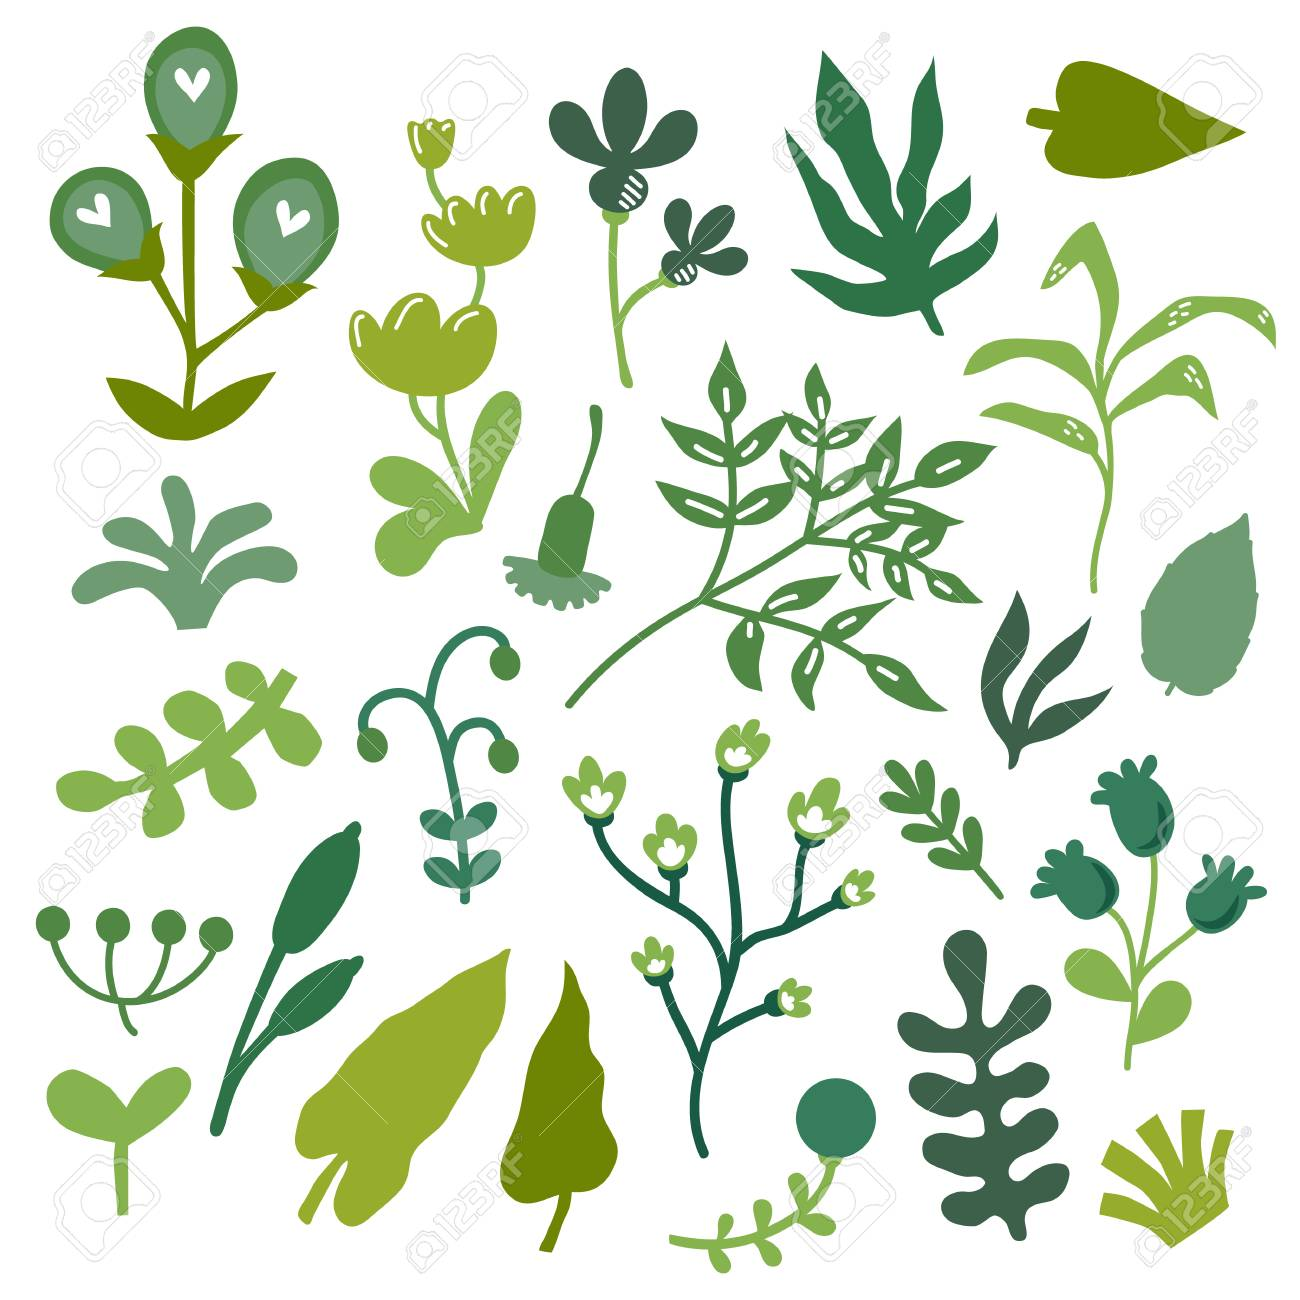 Vector Illustration Set Of Hand Drawn Unique Plants And Leaves Royalty Free Cliparts Vectors And Stock Illustration Image 101148907